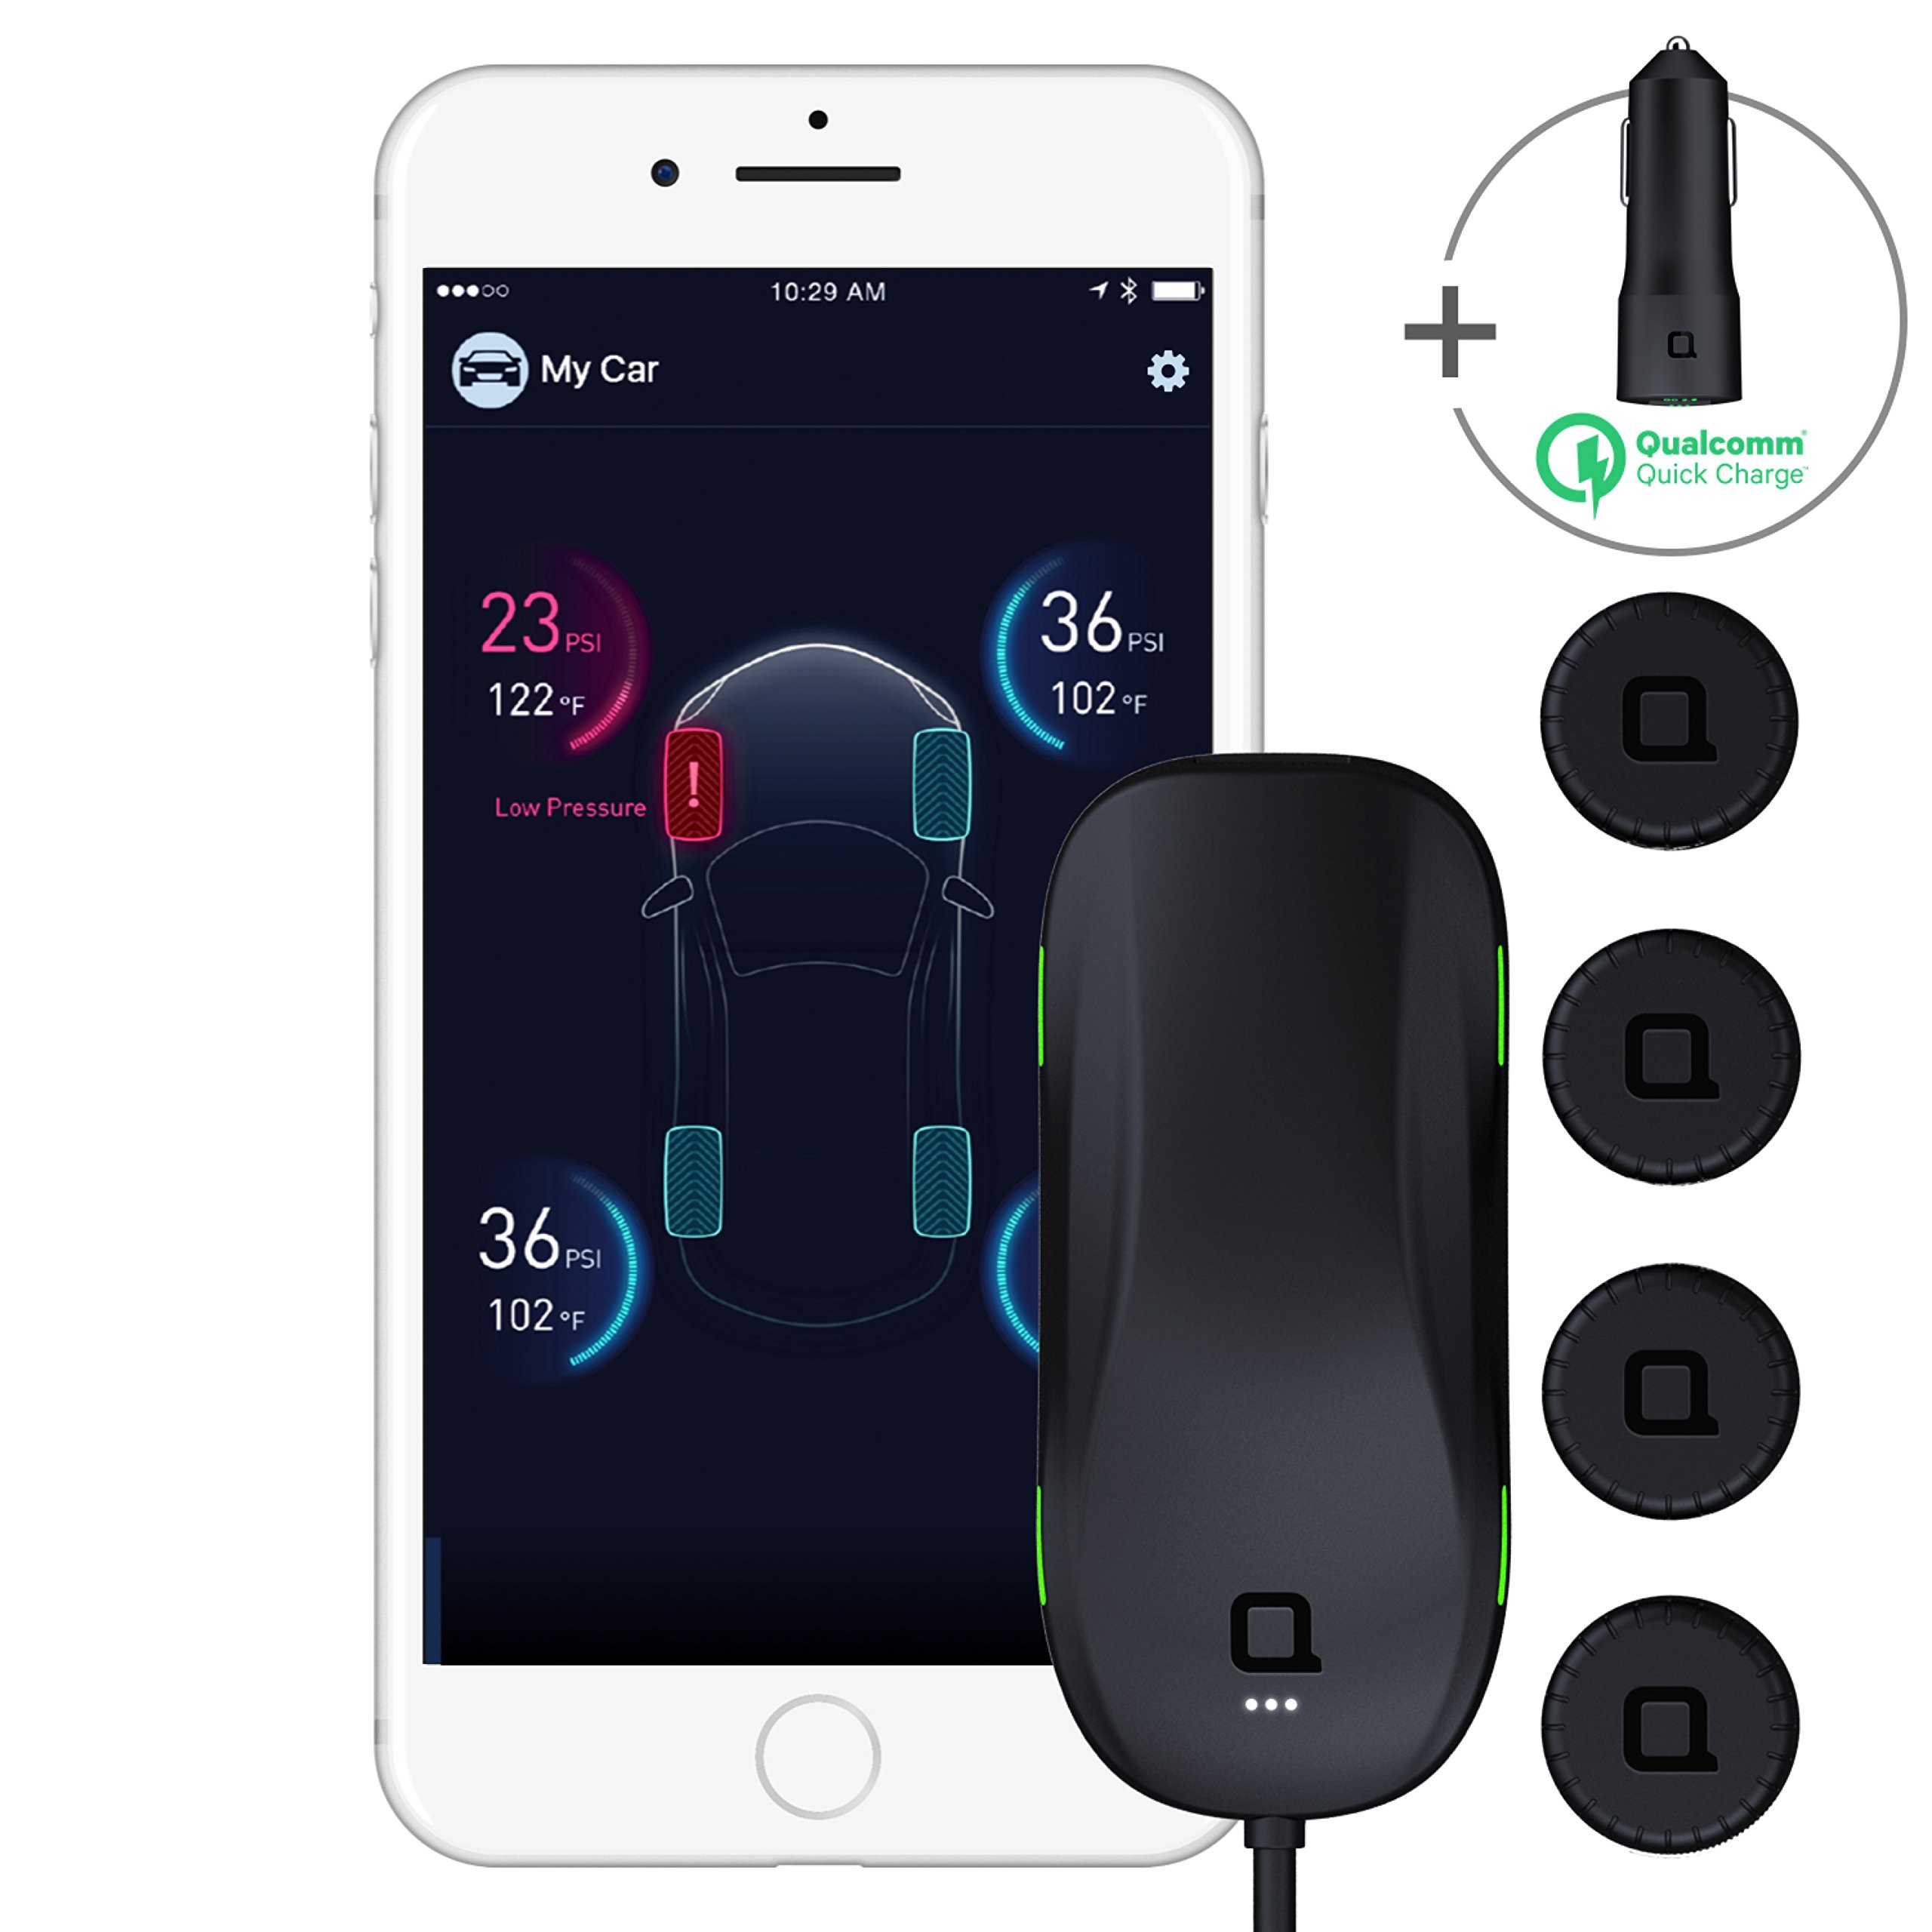 nonda ZUS Smart Tire Safety Monitor & Smart Car Charger Bundle, World's First Slow Leak Detection with AccurateTemp Technology, Real-Time Tire Pressure & Tempe Data, App Enabled TPMS & Car Charger